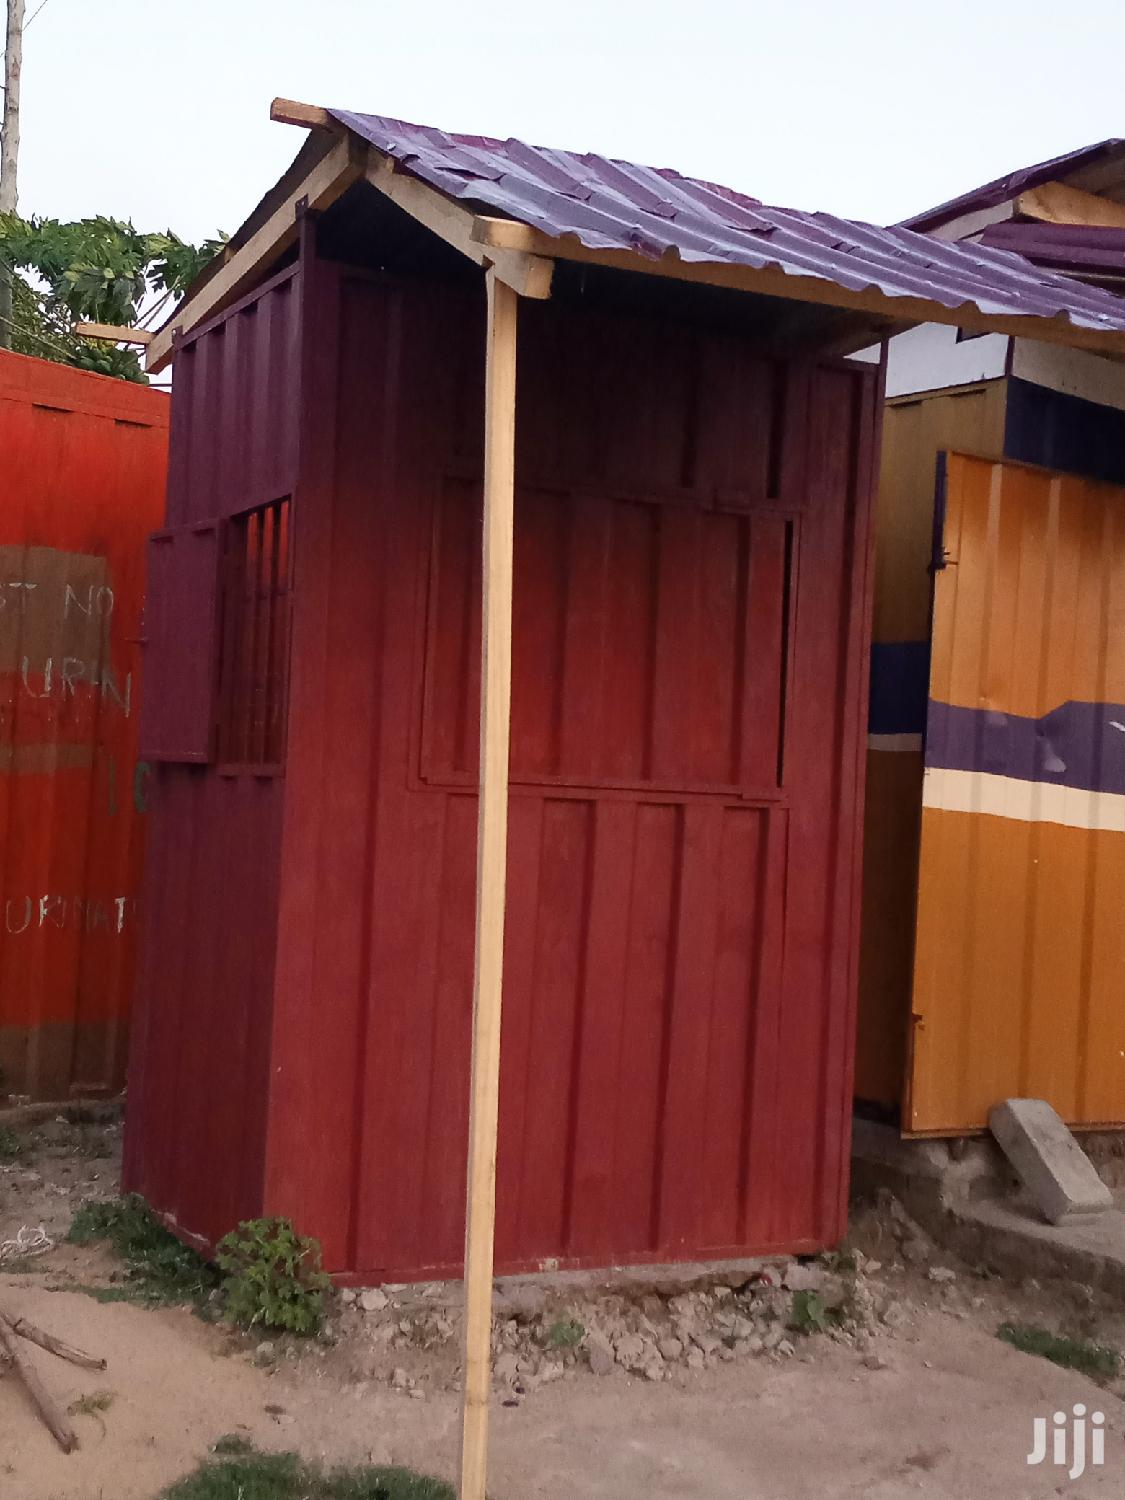 Mobile Money Container For Sale/ Rent | Commercial Property For Sale for sale in Accra Metropolitan, Greater Accra, Ghana